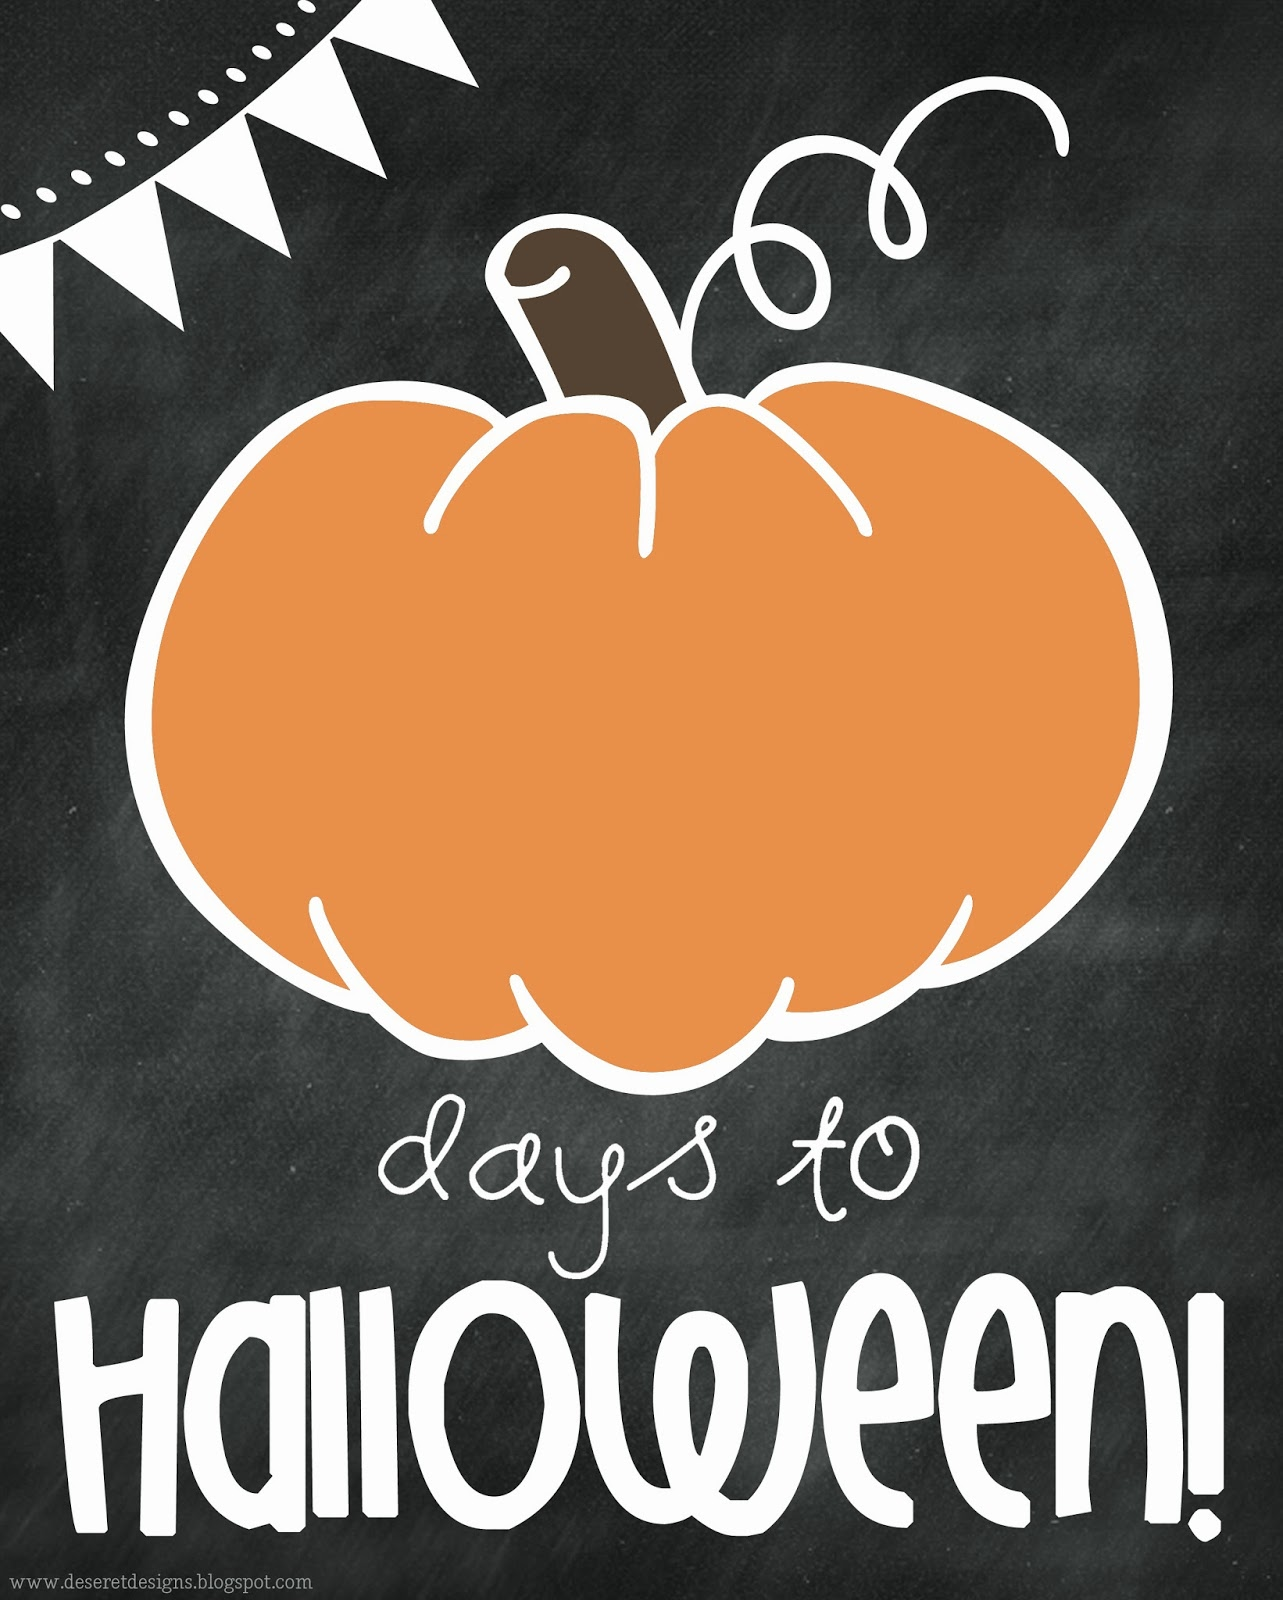 Impertinent image with regard to printable holloween pictures